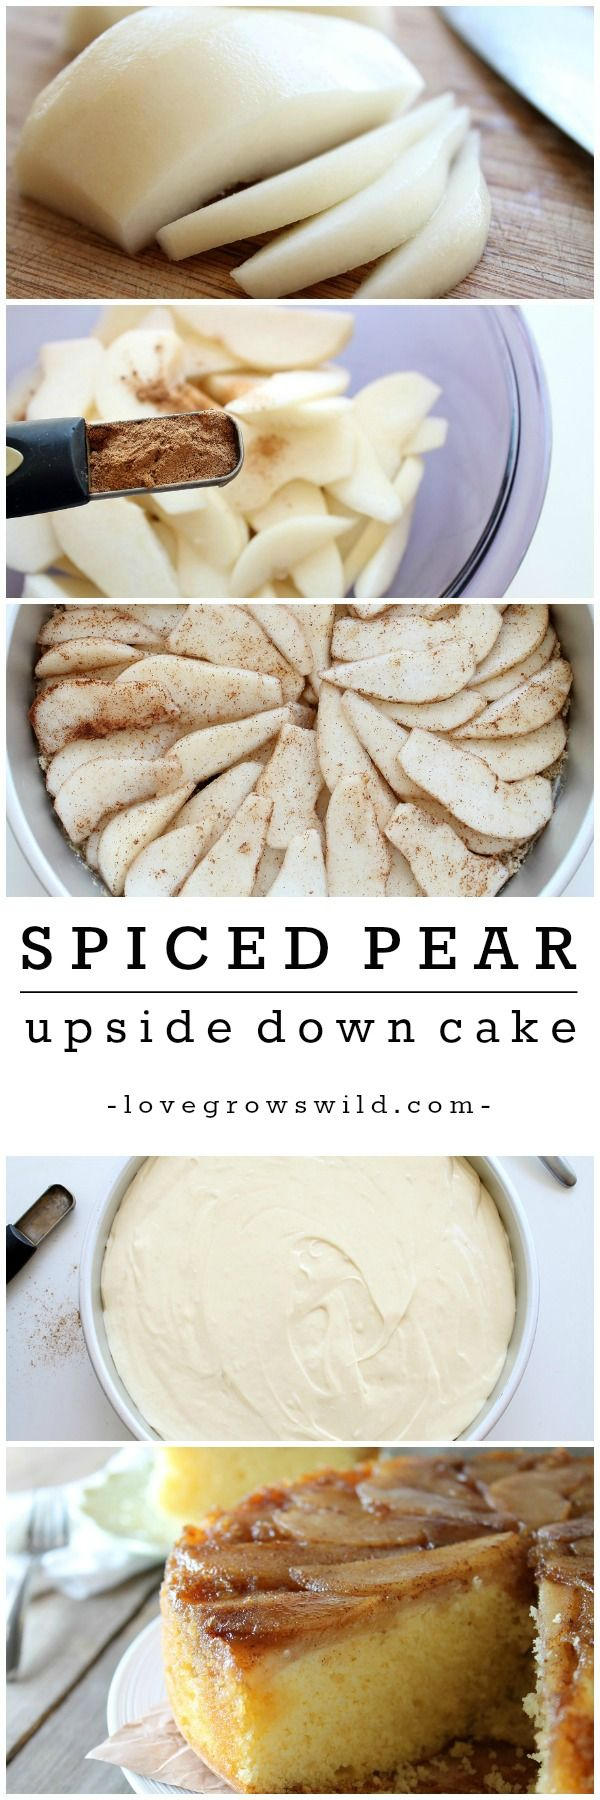 Spiced Pear Upside Down Cake - always a favorite Fall dessert! Looks gorgeous and is so simple to make! Get the recipe at LoveGrowsWild.com